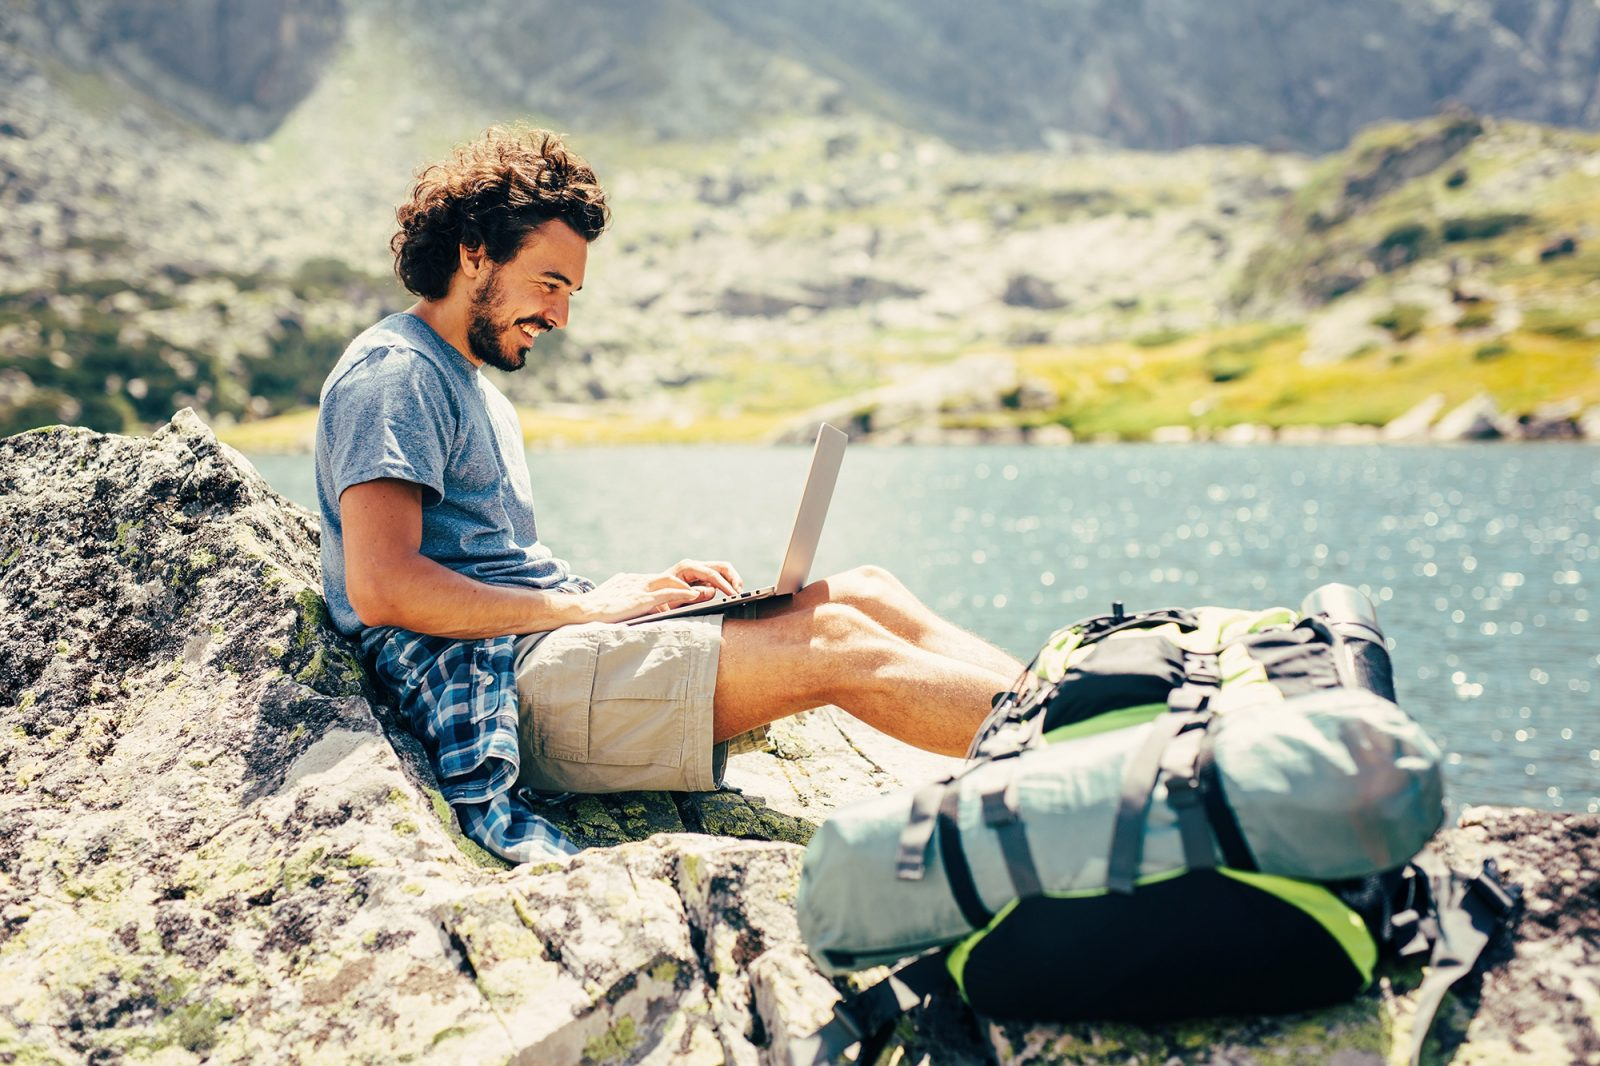 the-best-remote-experience-programs-for-aspiring-travelers_kgud